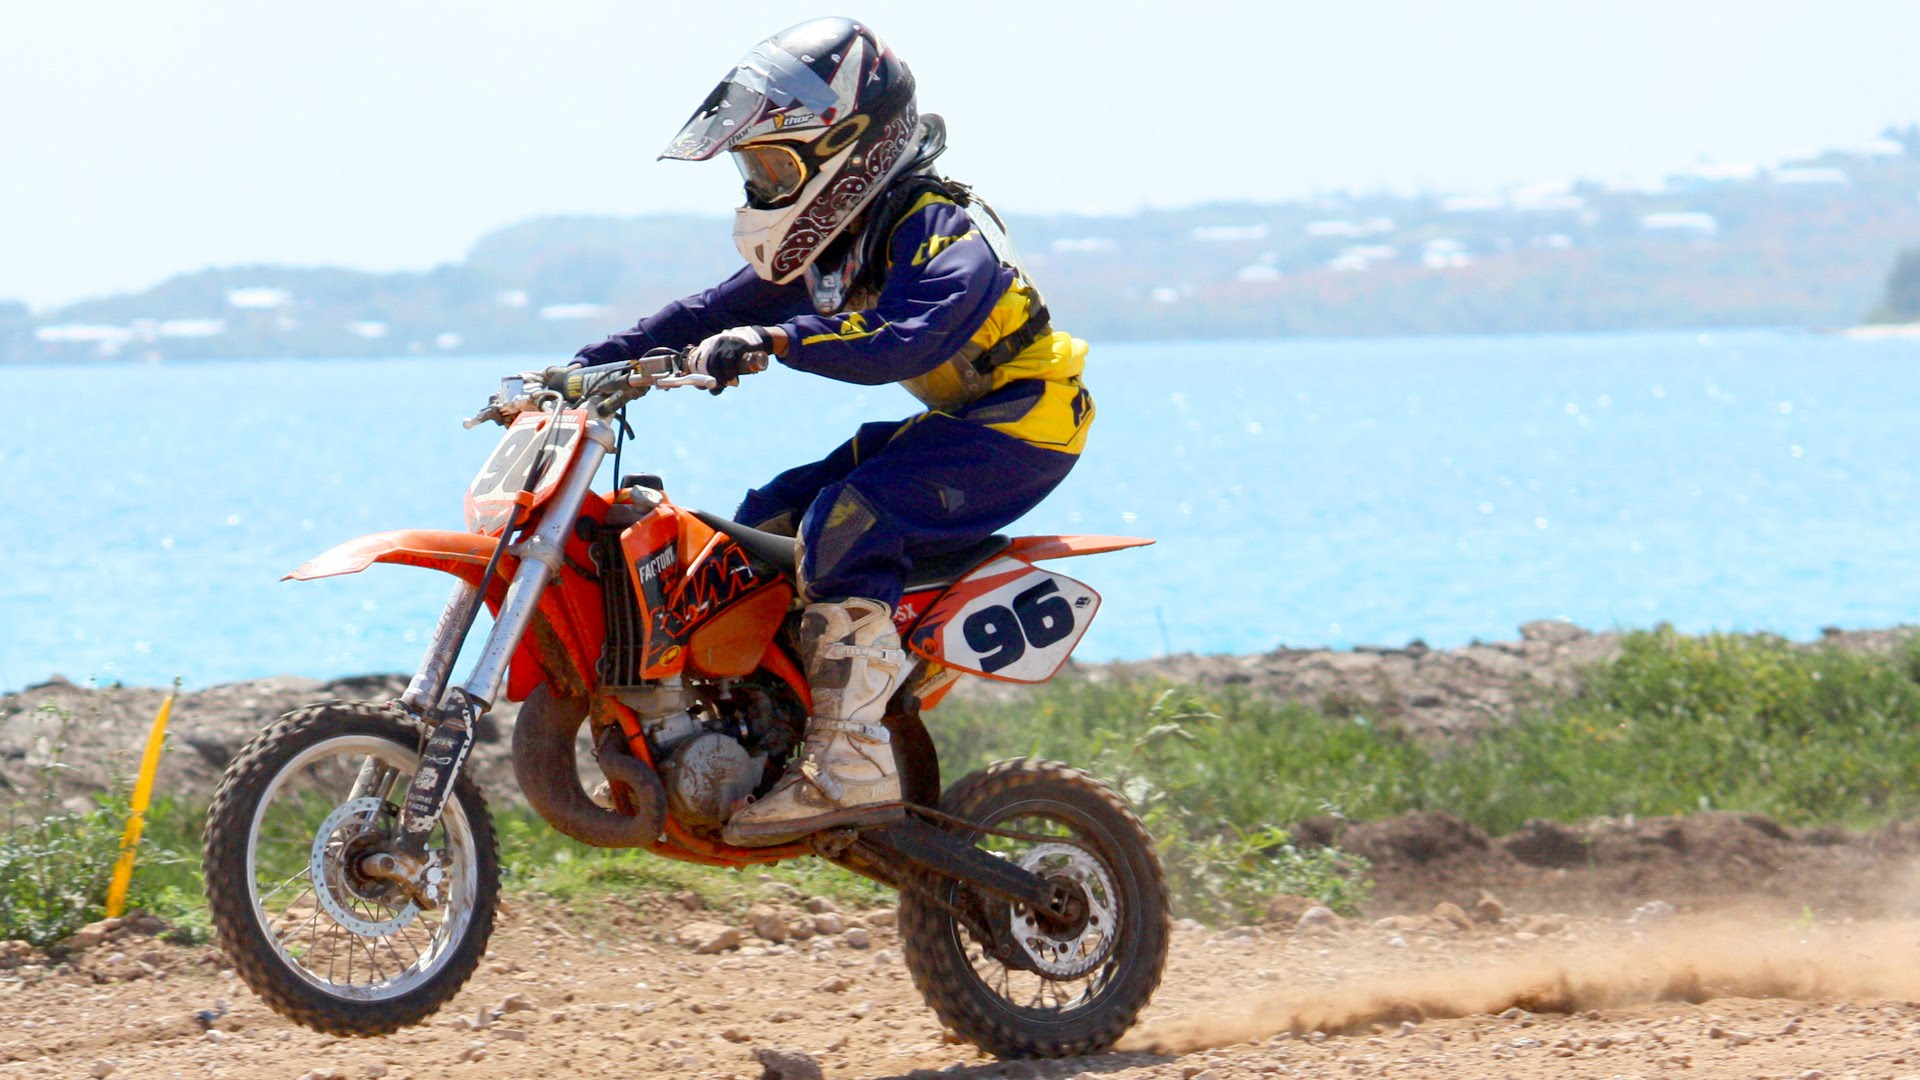 Dirtbike Racing 65CC Motocross Bikes: Is There Anything More Fun ...